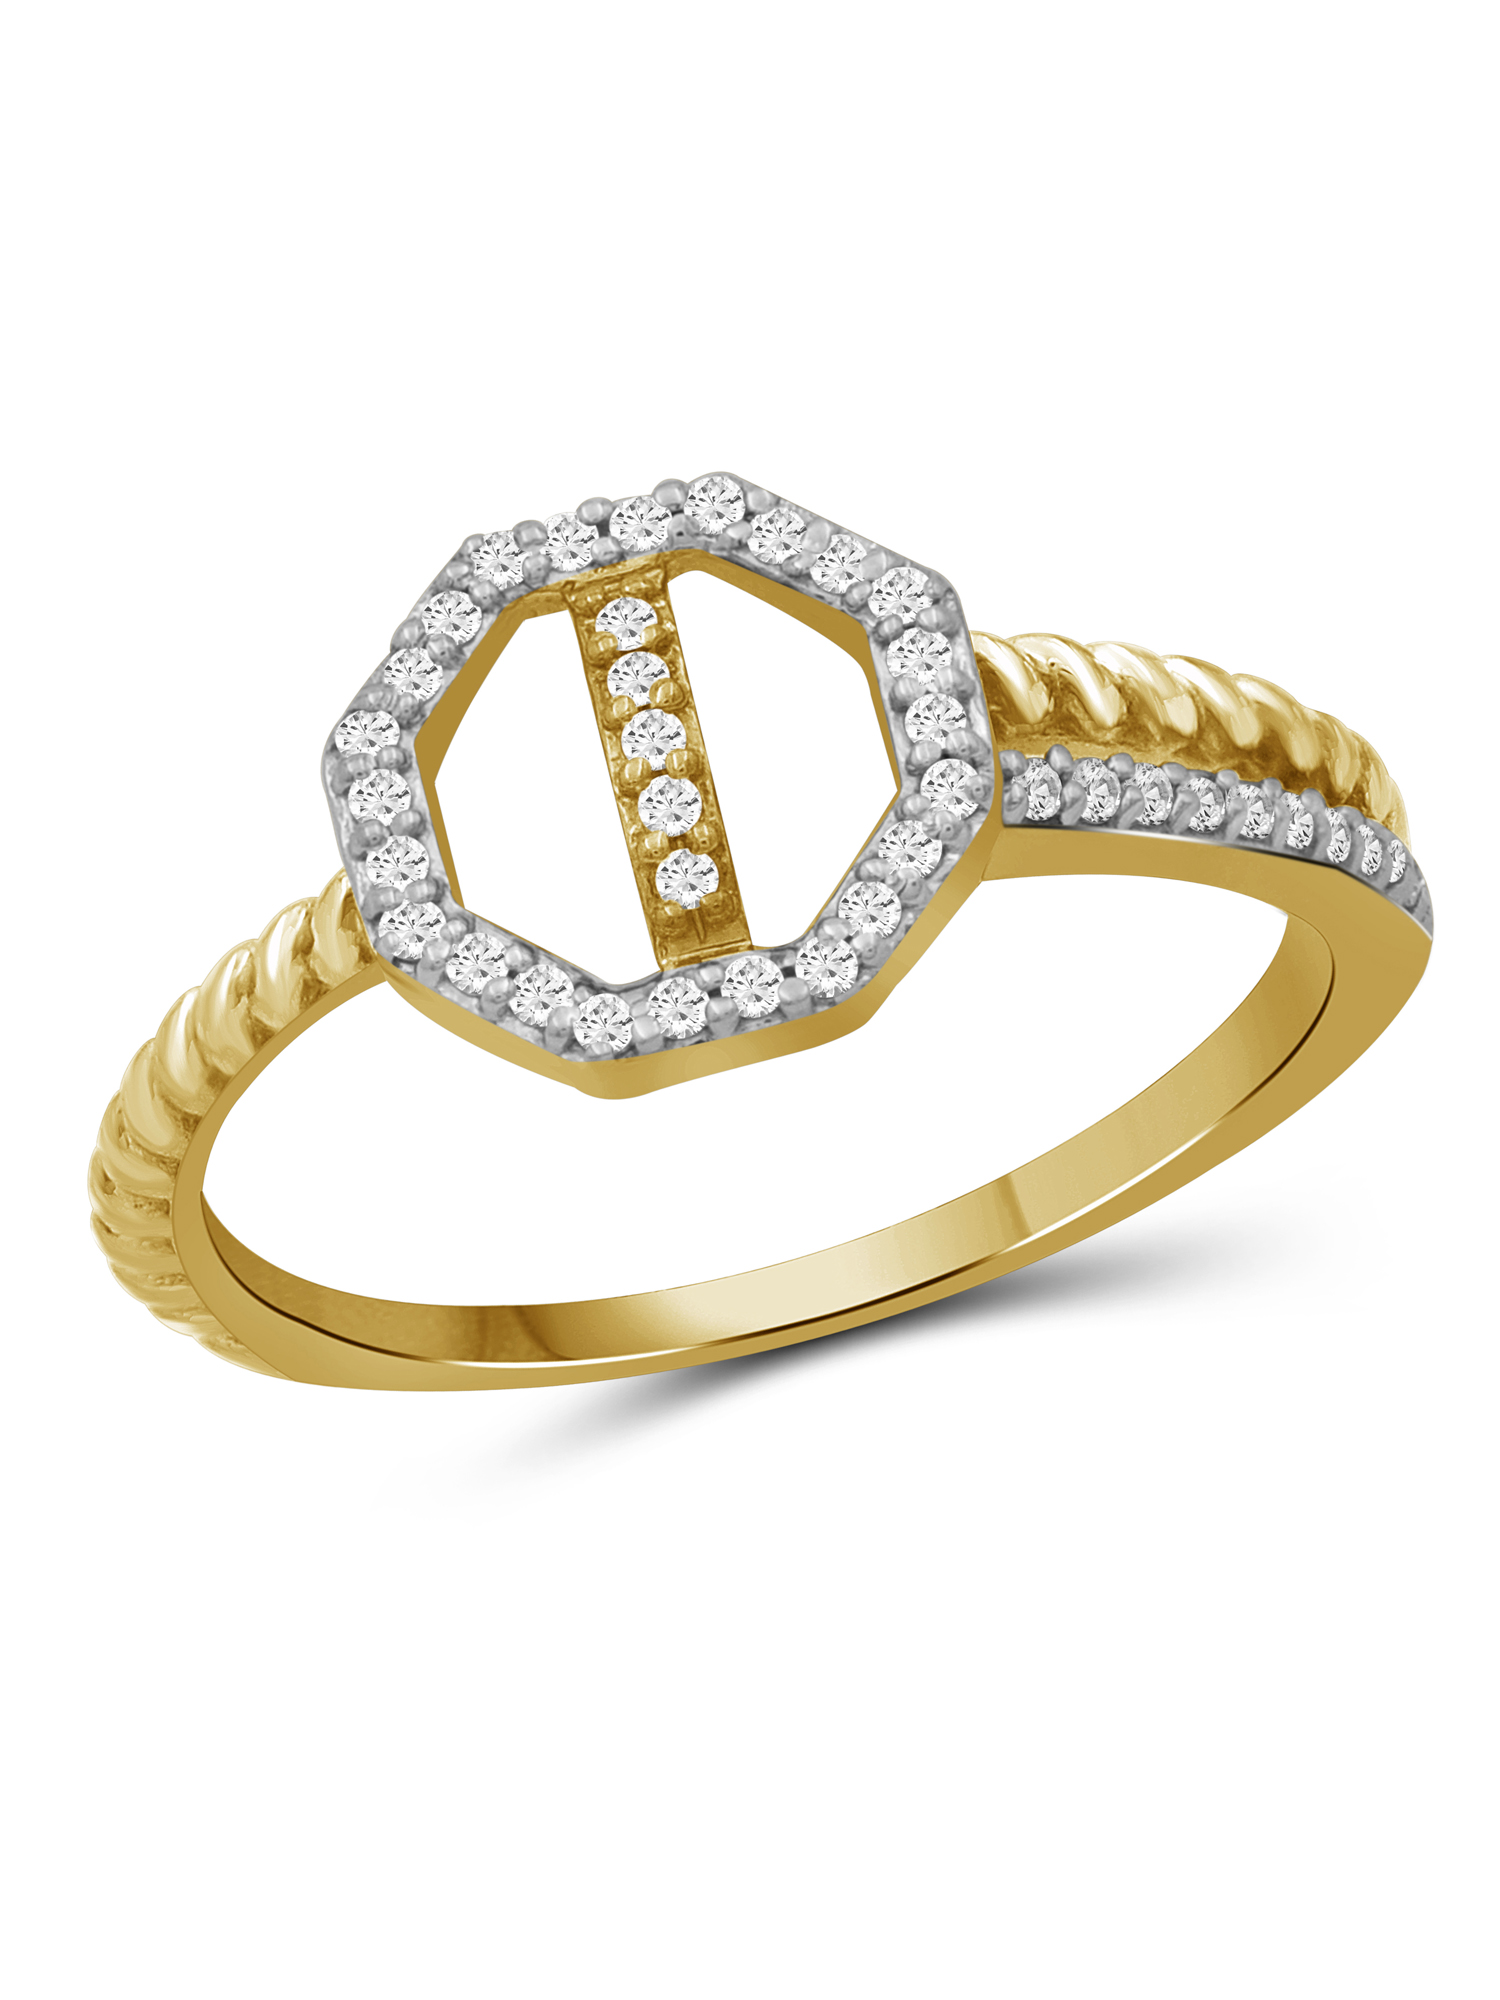 15 Carat T.W Yellow And White Diamond Sterling Silver Octagon Ring